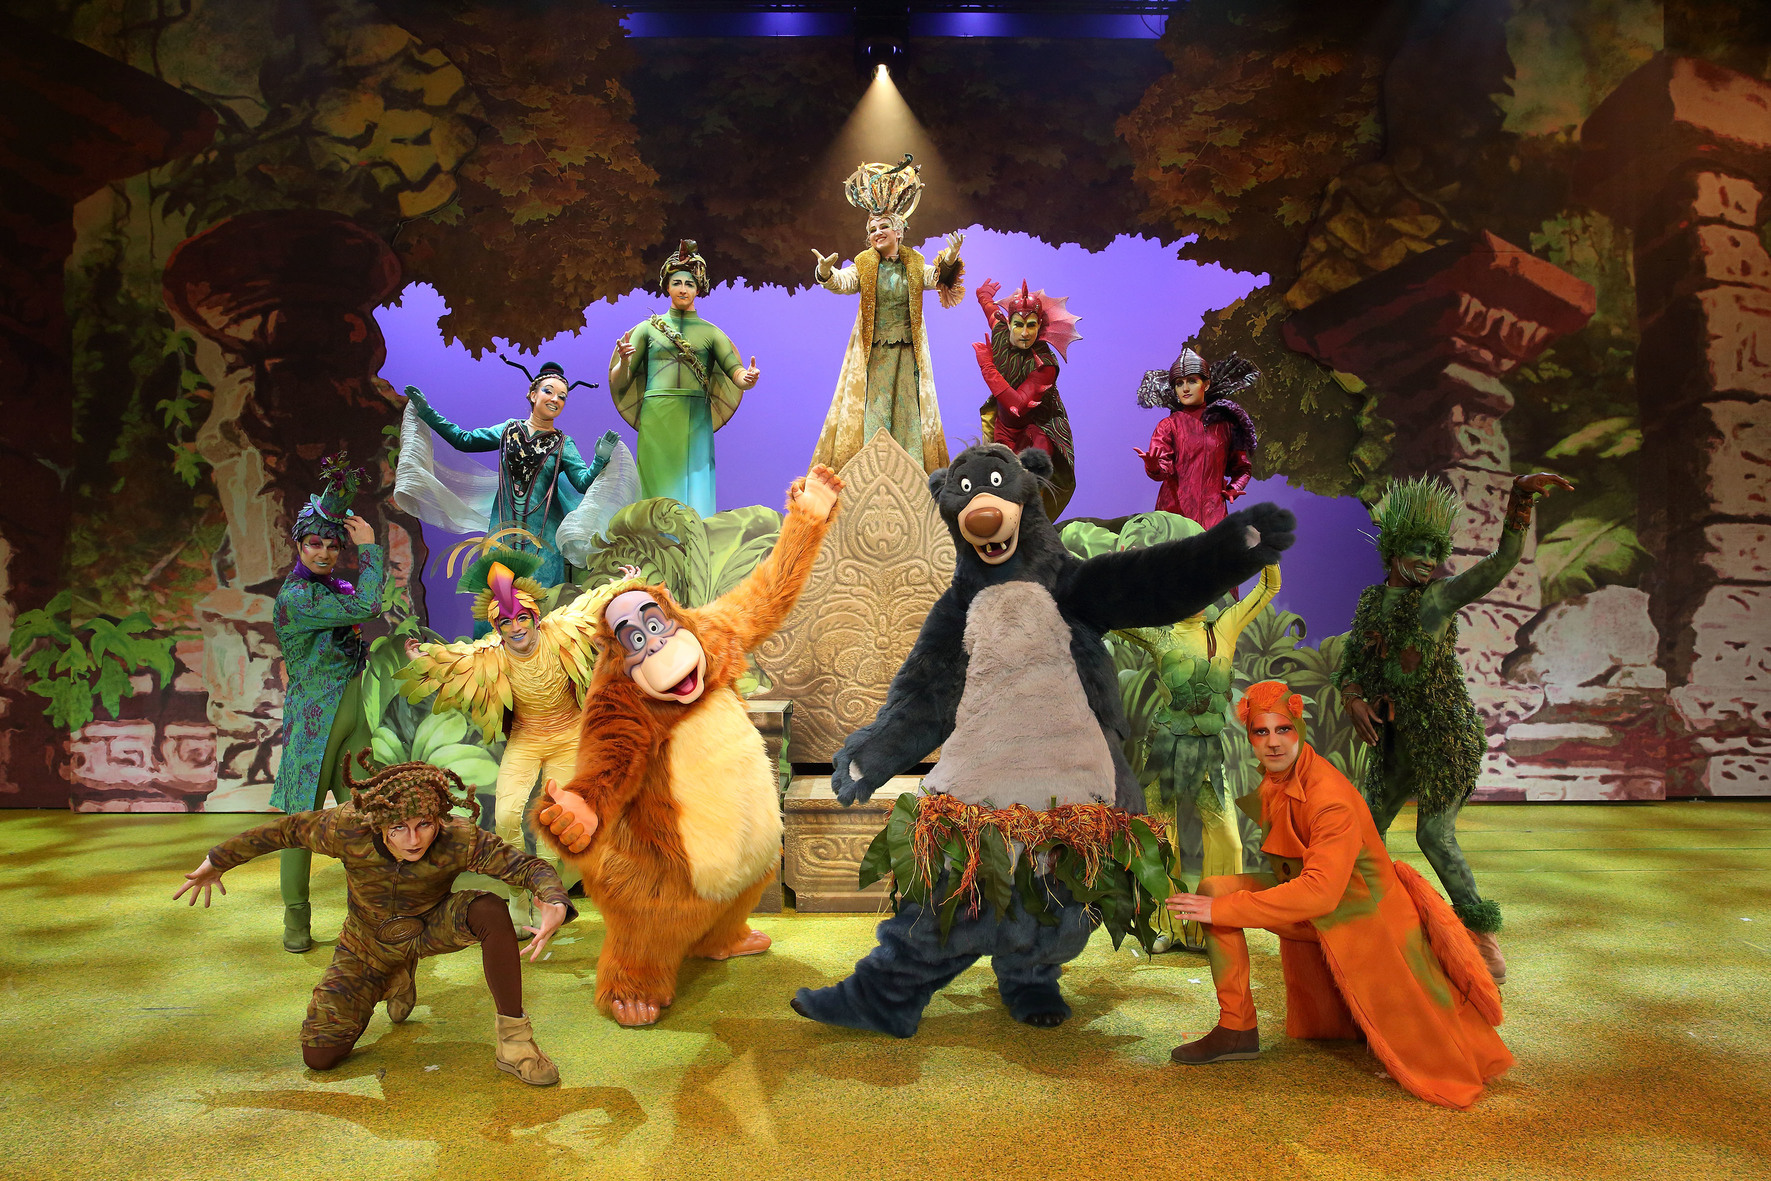 The Forest of Enchantment: A Disney Musical Adventure Preview